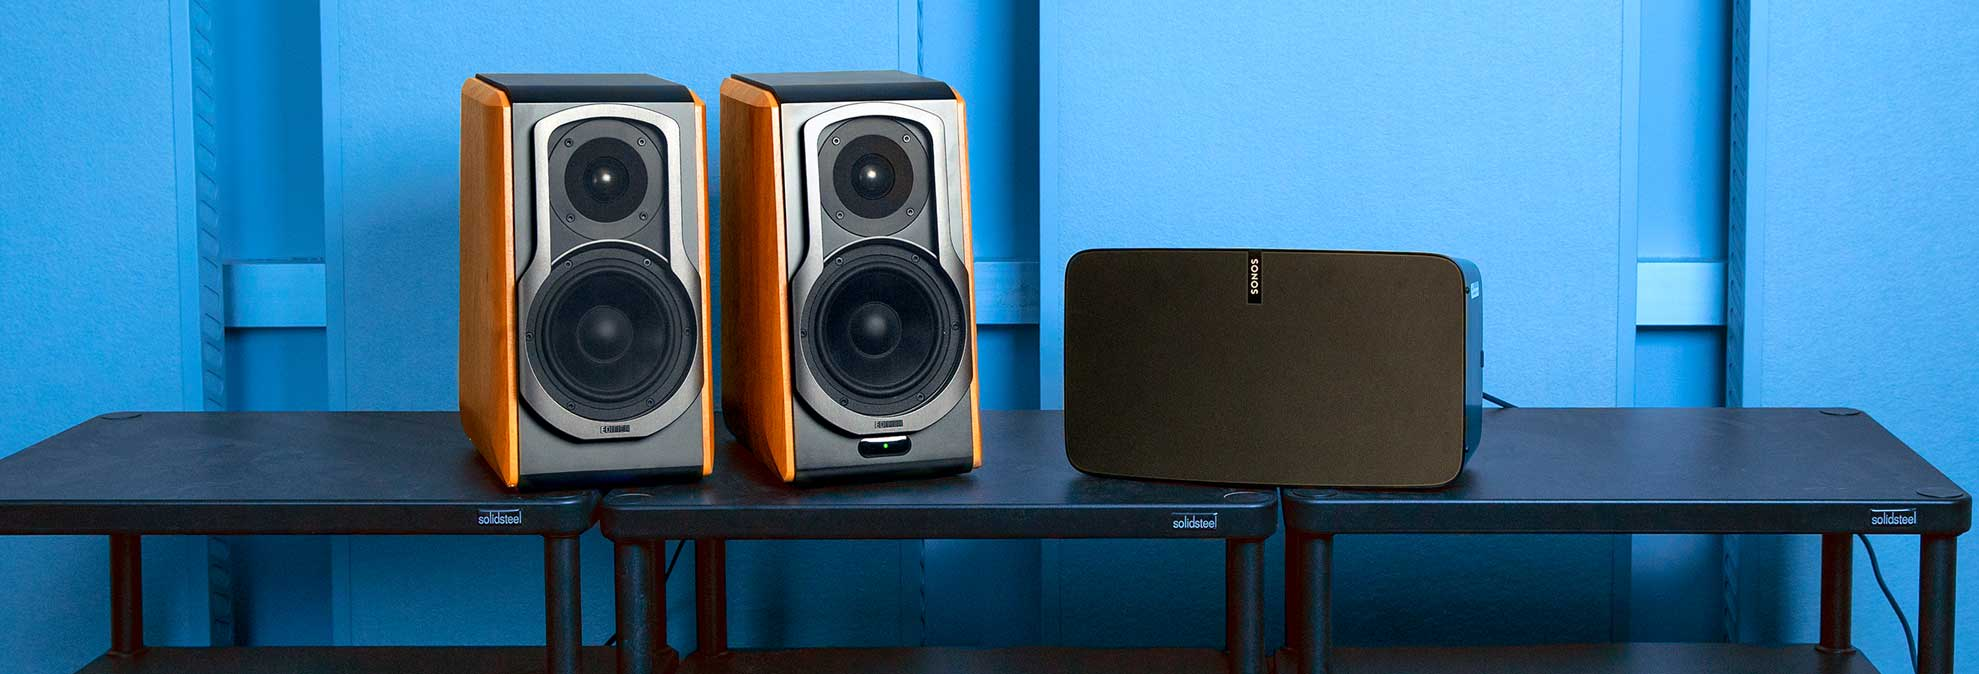 Edifier S1000DB vs. Sonos Play:5 Wireless Speakers - Consumer Reports